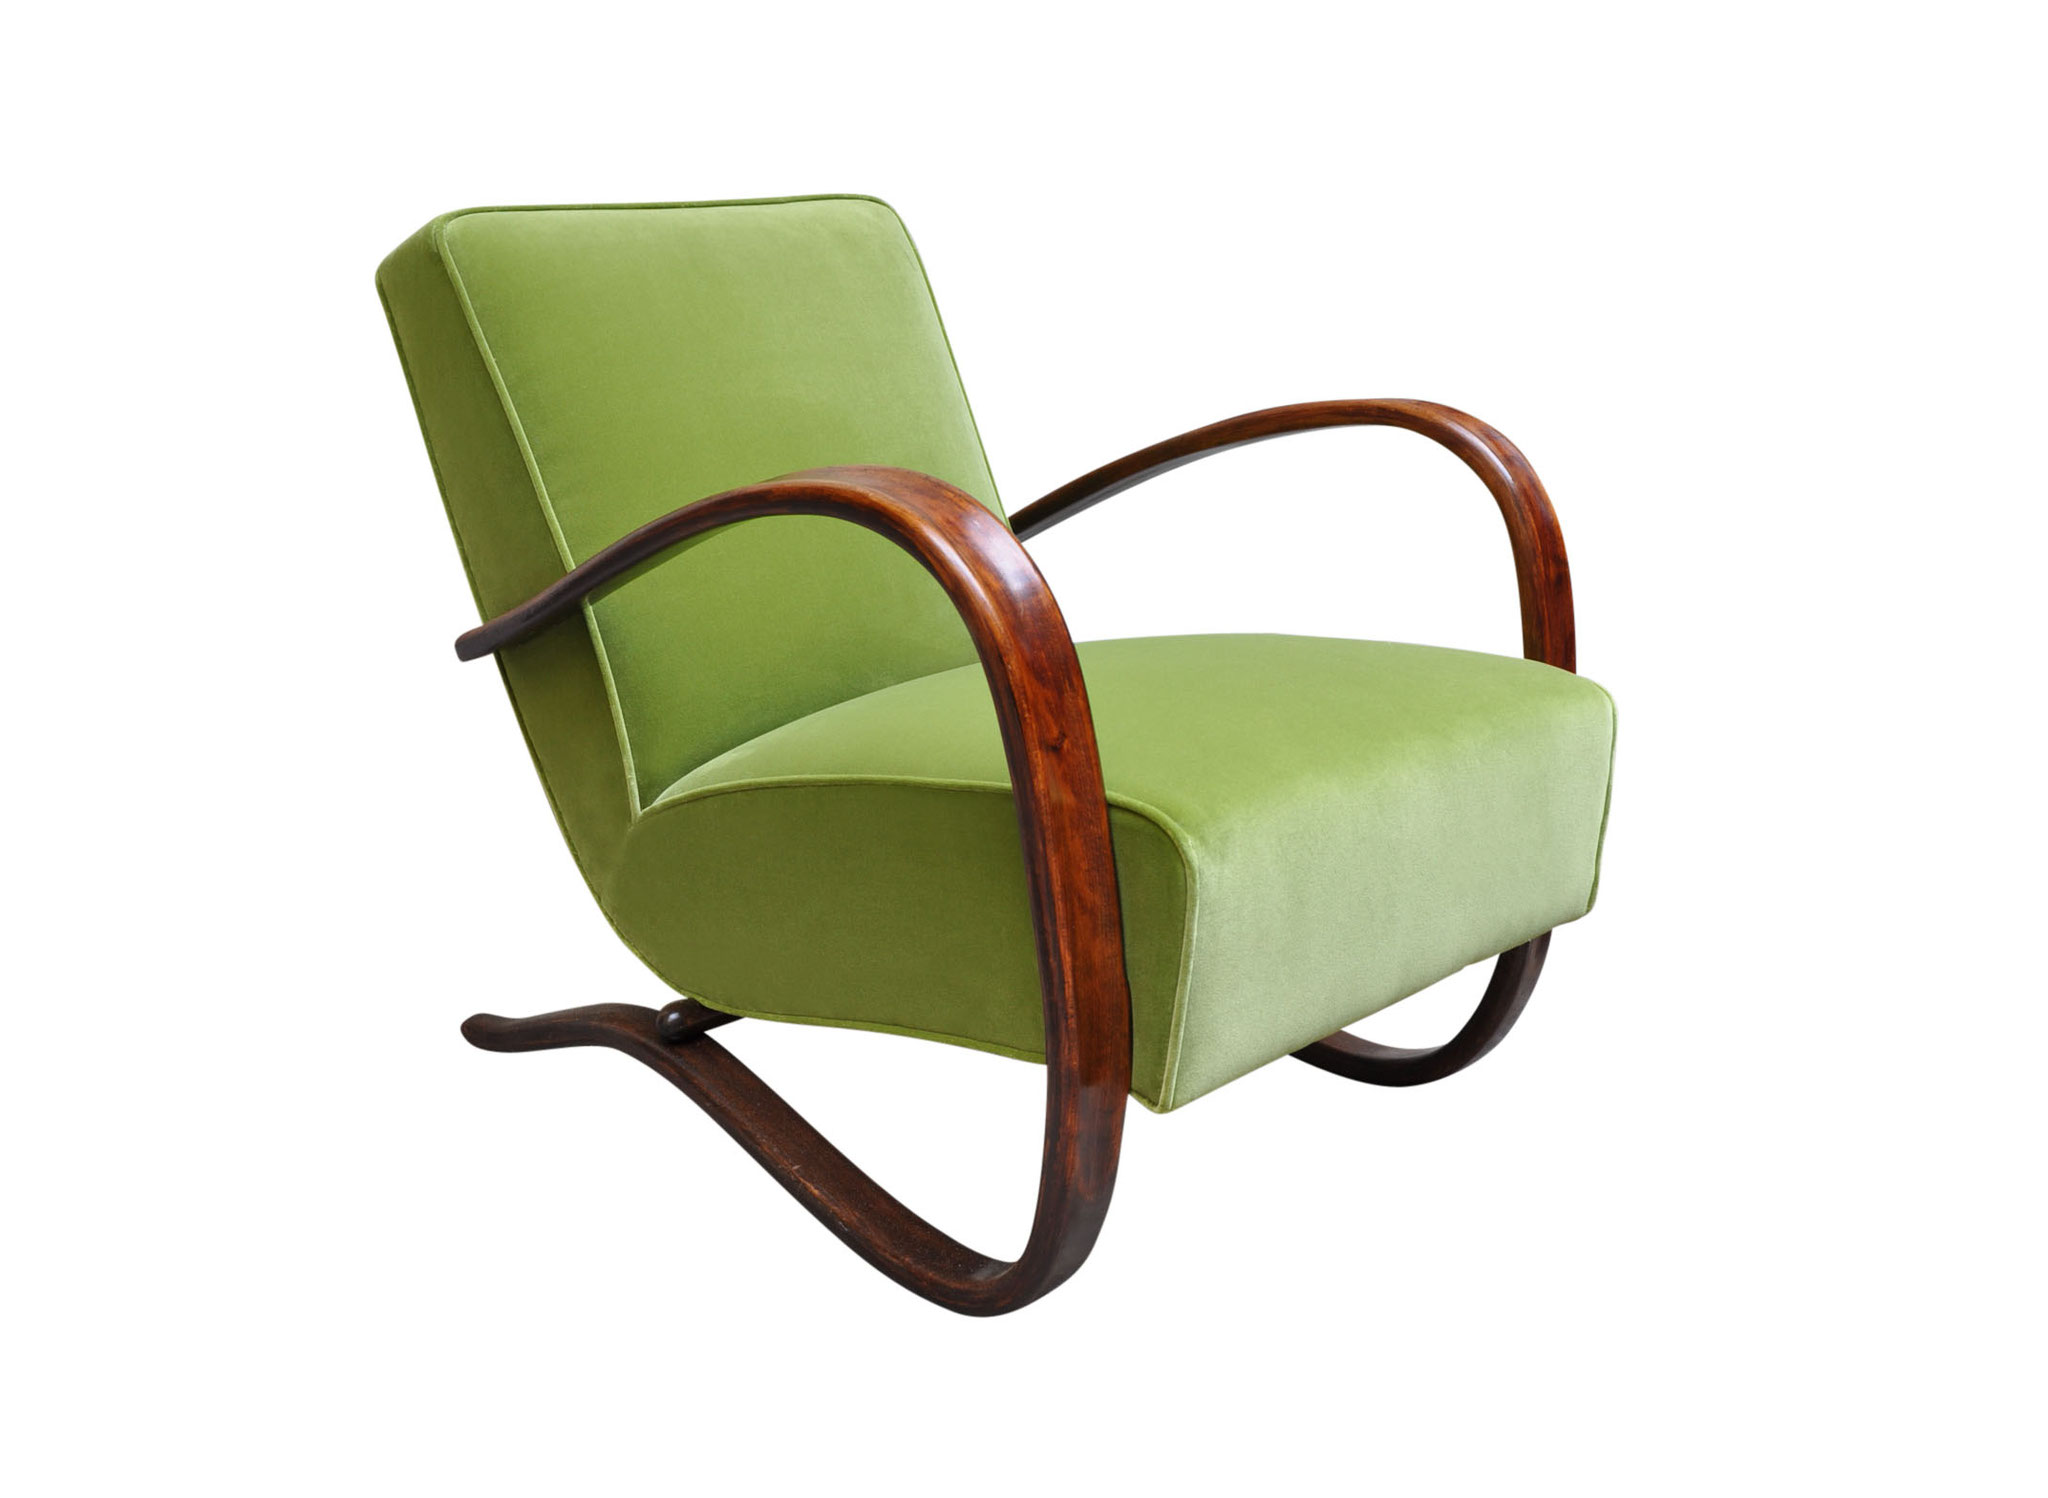 H269 mid century art deco chair lime velvet